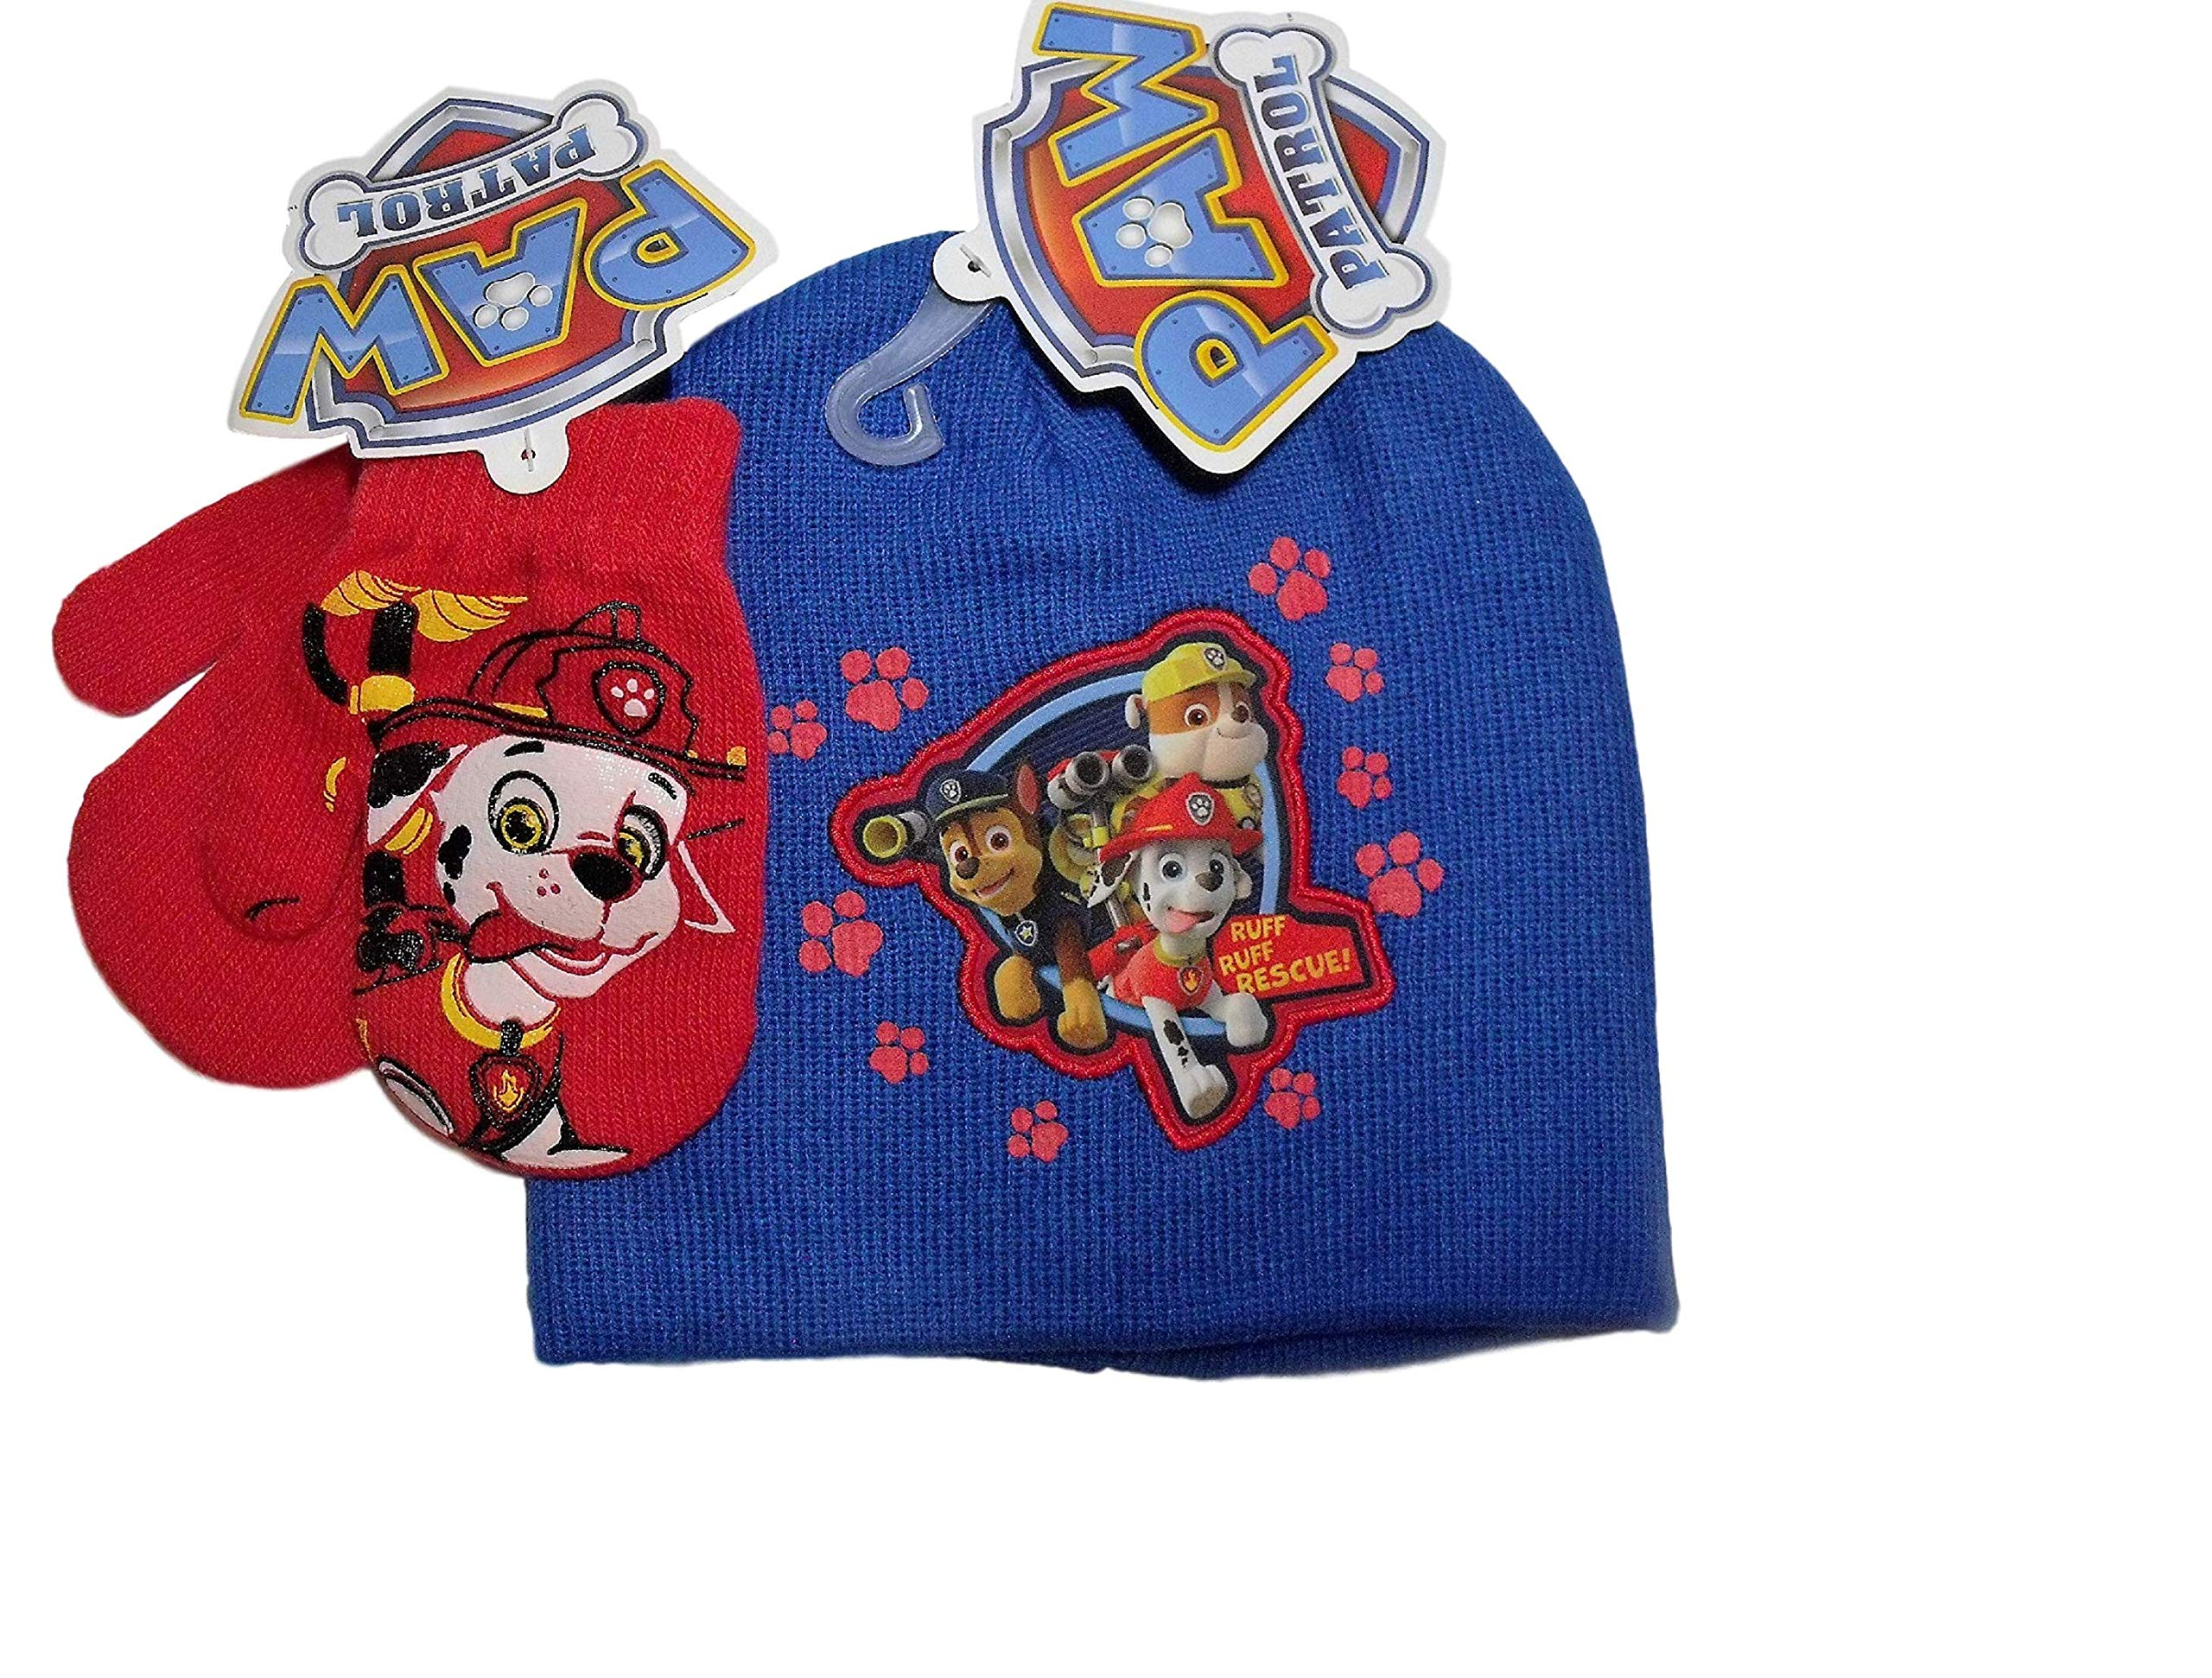 Paw Patrol Blue with Red Footprints Knit Beanie Hat Red Mittens Set